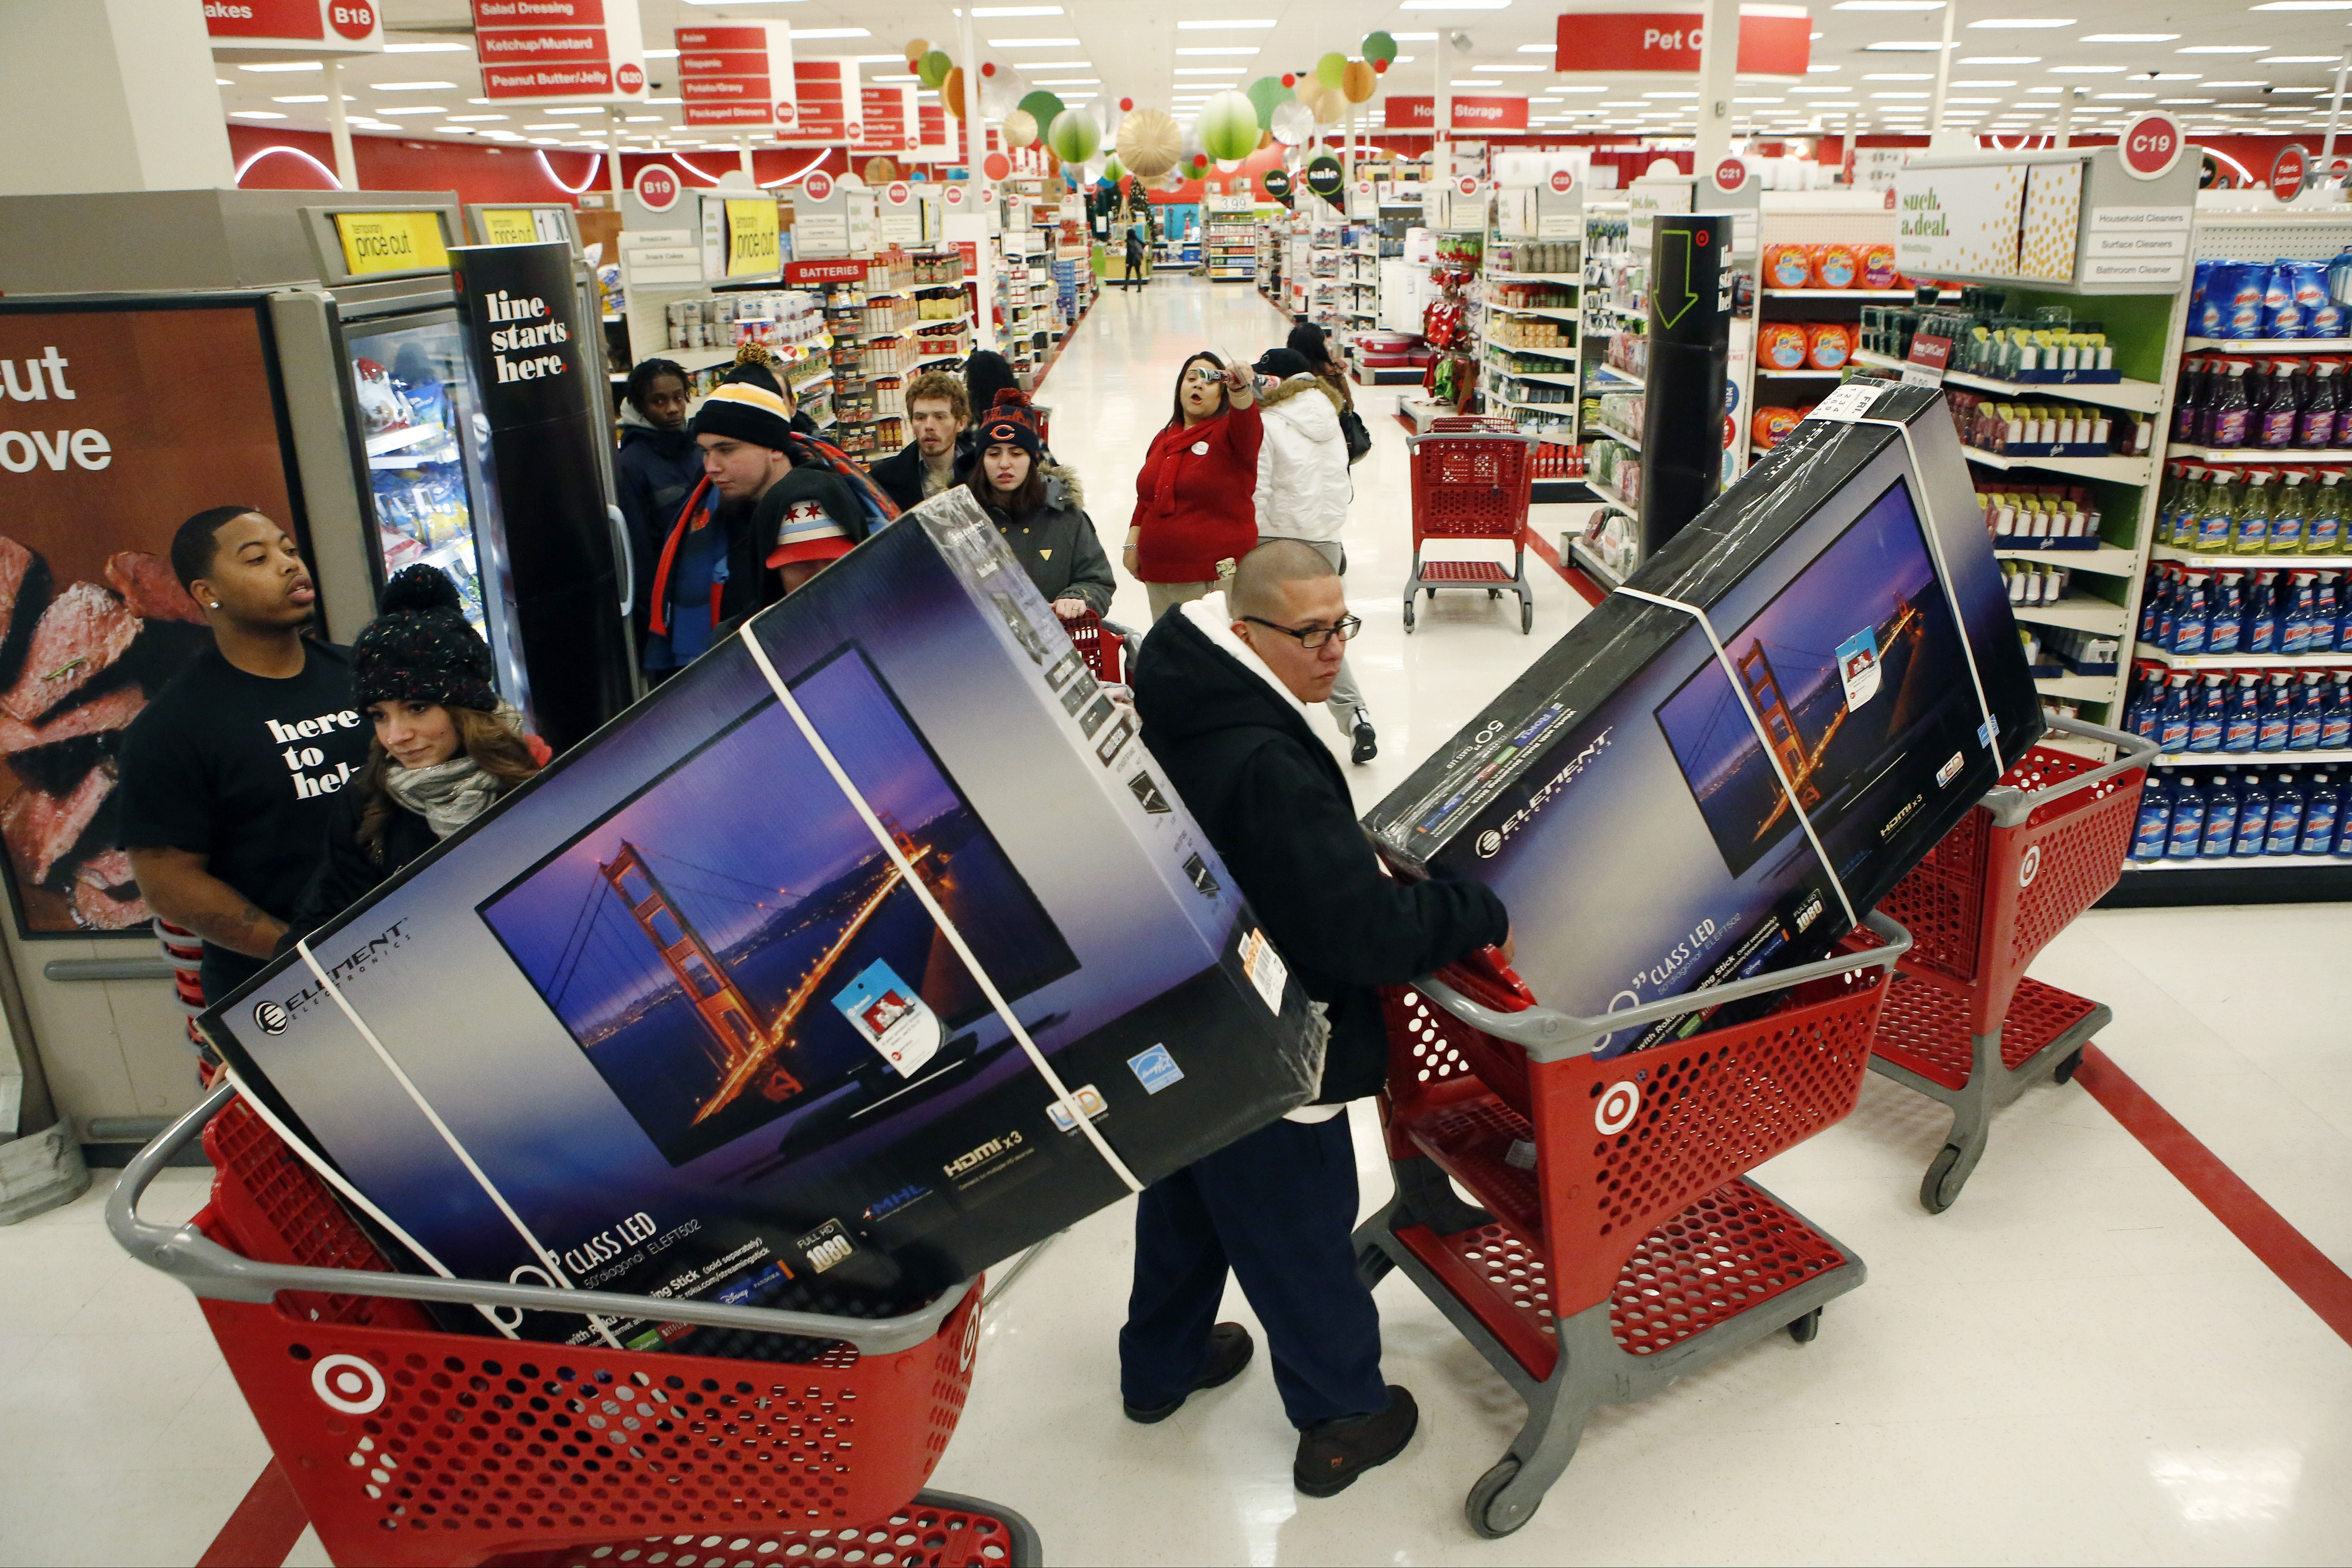 Customers pick up shopping carts containing Element Electronics 50-inch light-emitting diode (LED) high definition televisions at a Target Corp. store opening ahead of Black Friday in Chicago, Illinois, U.S., on Thursday, Nov. 28, 2013.